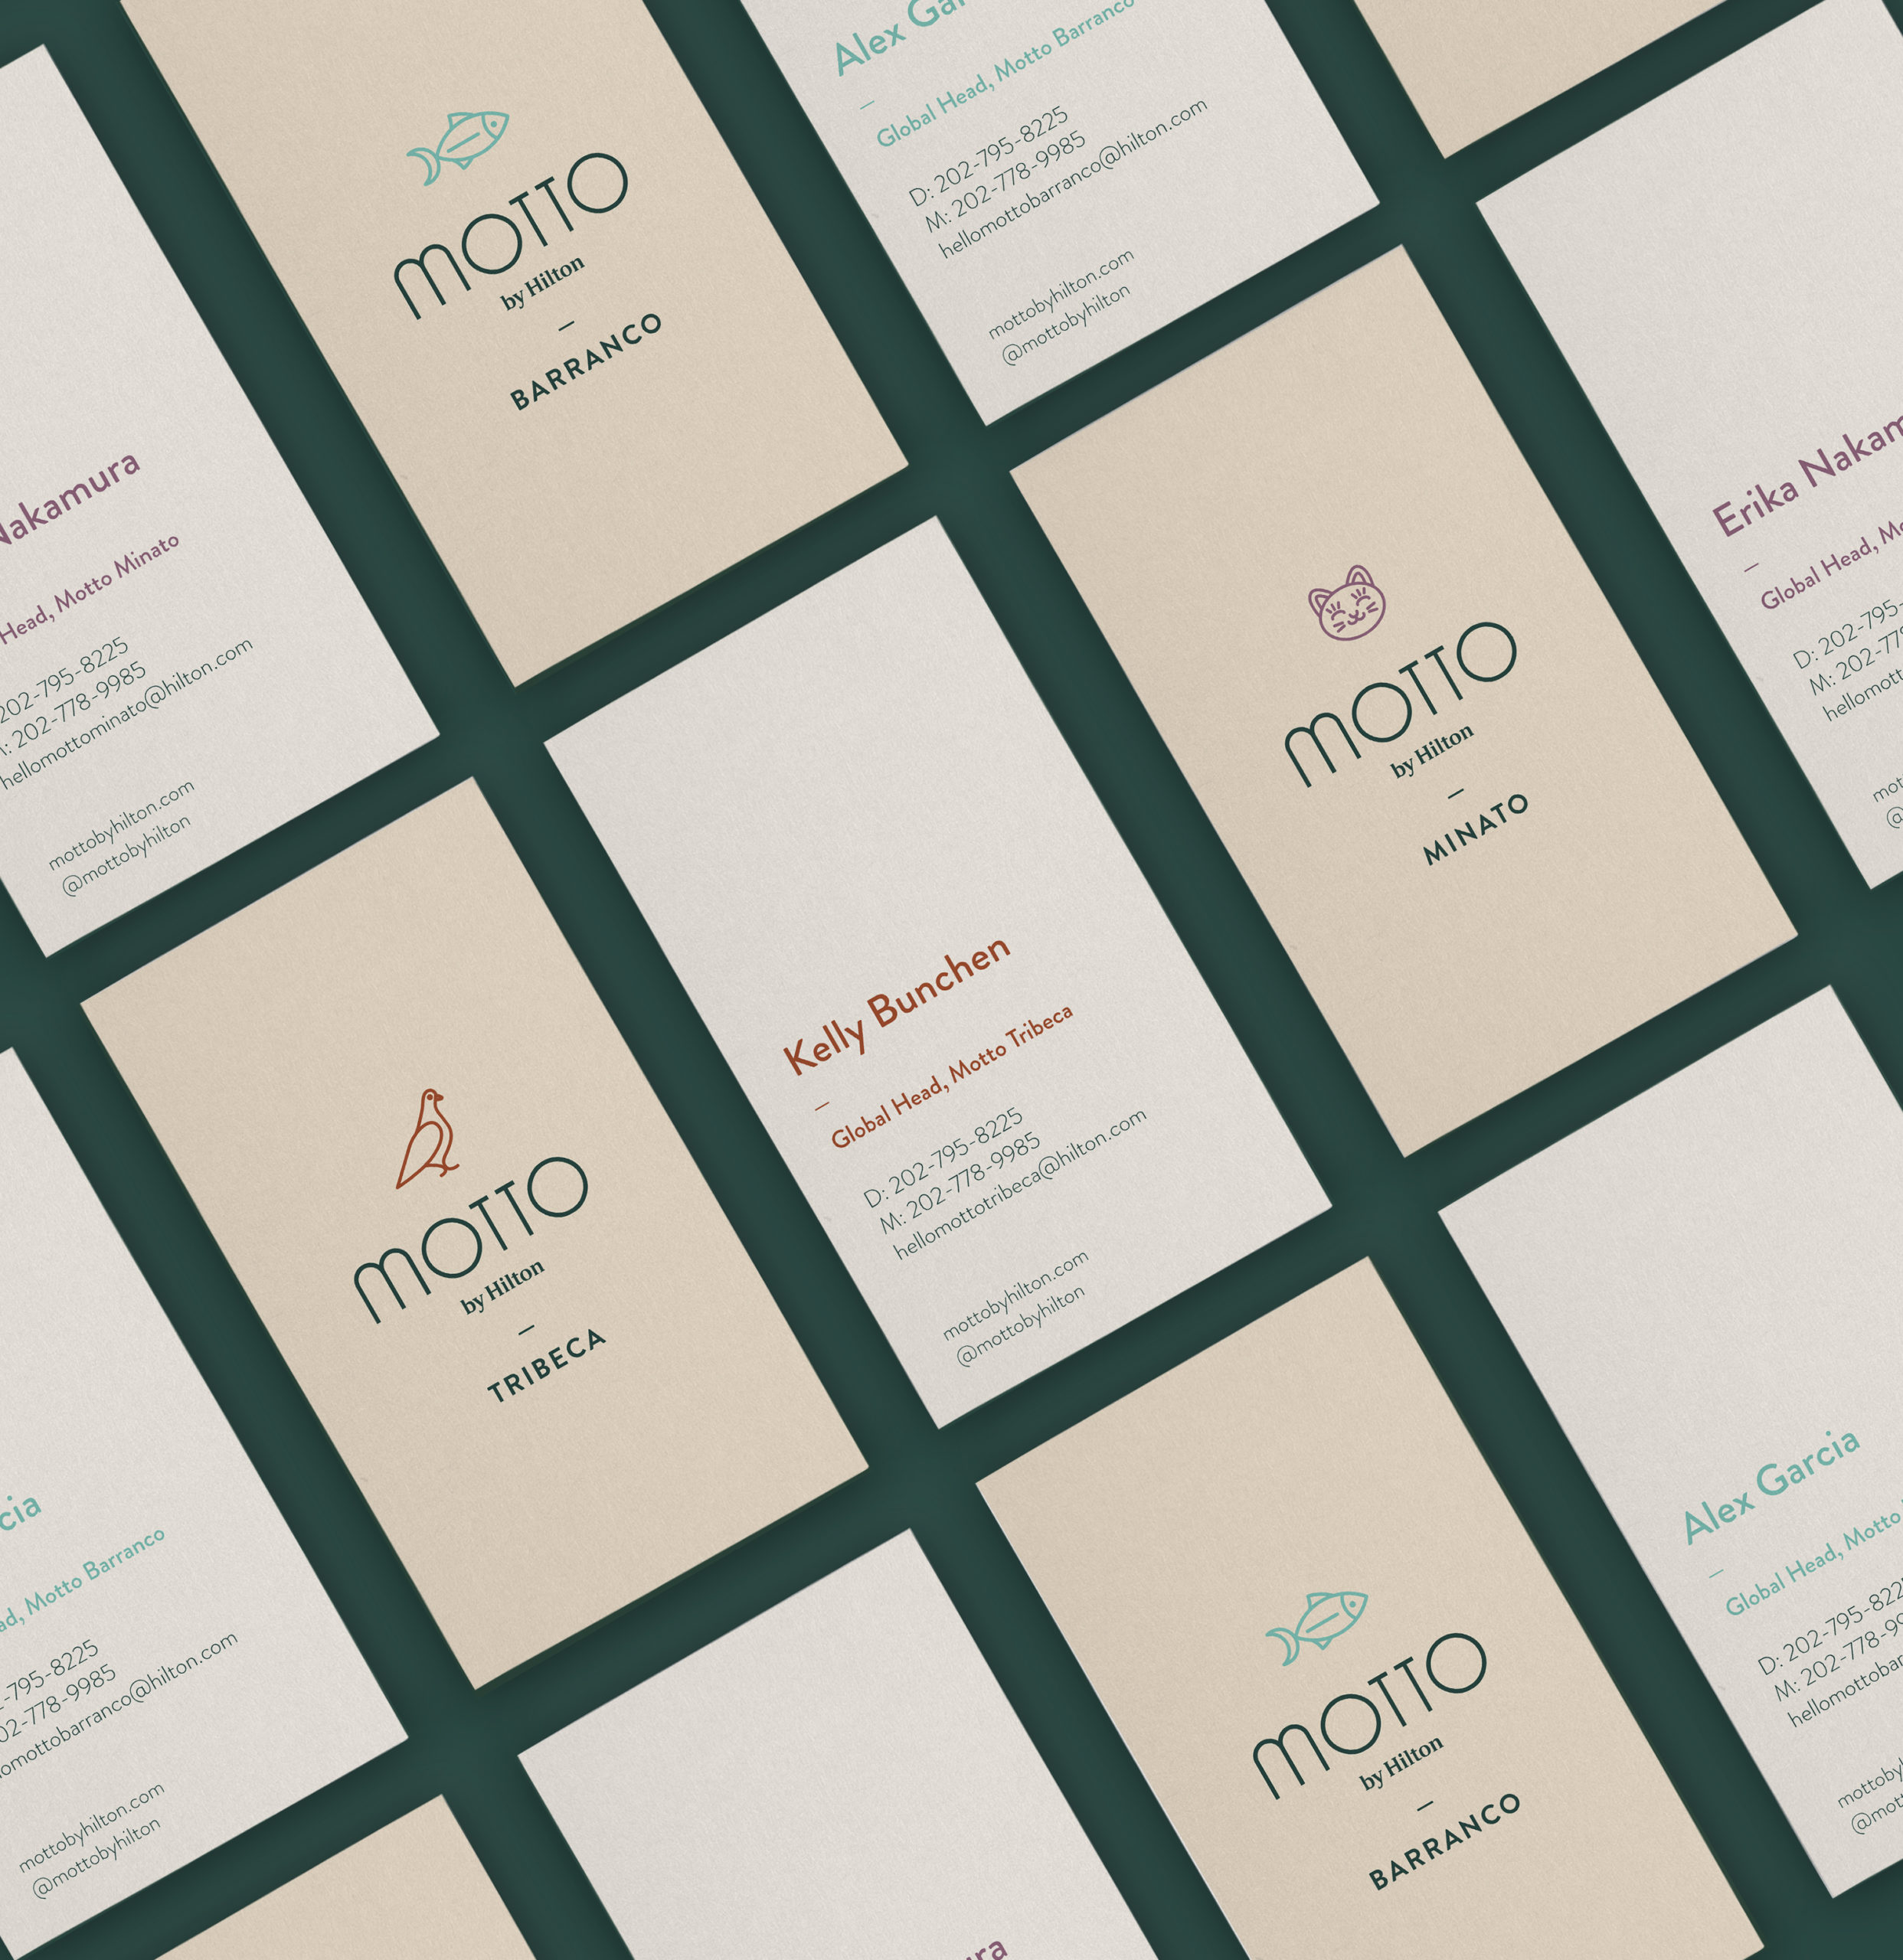 033119_Motto_BusinessCards_Mockup